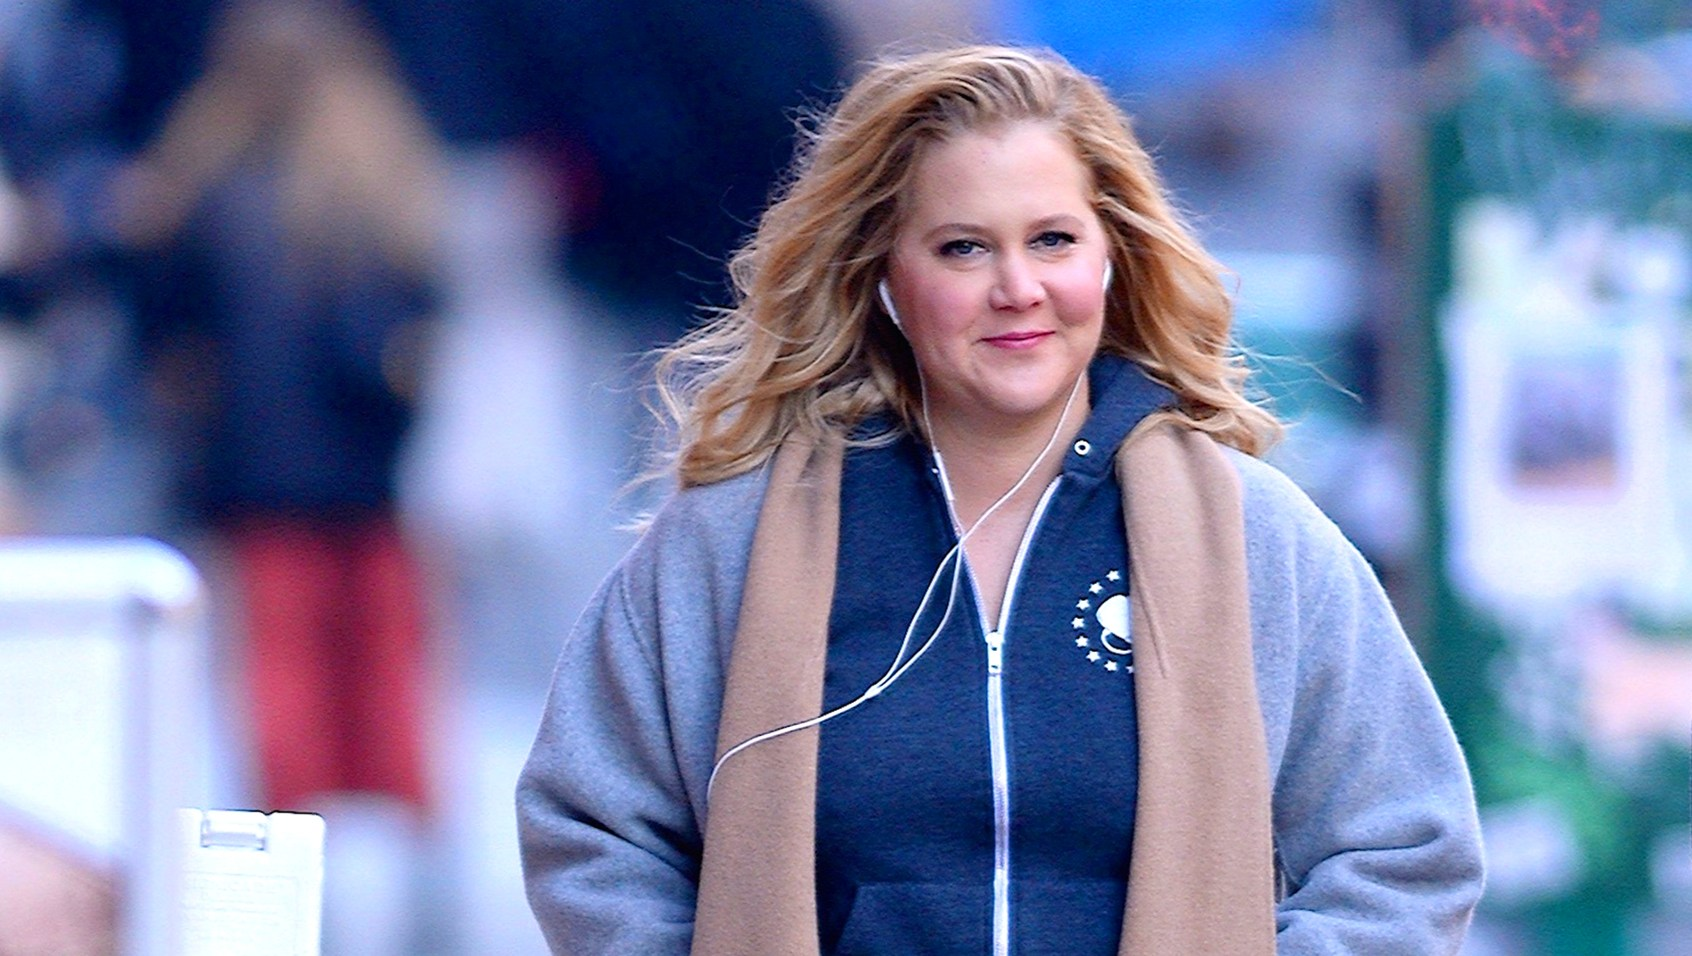 Amy Schumer seen out walking in SoHo on October 25, 2018